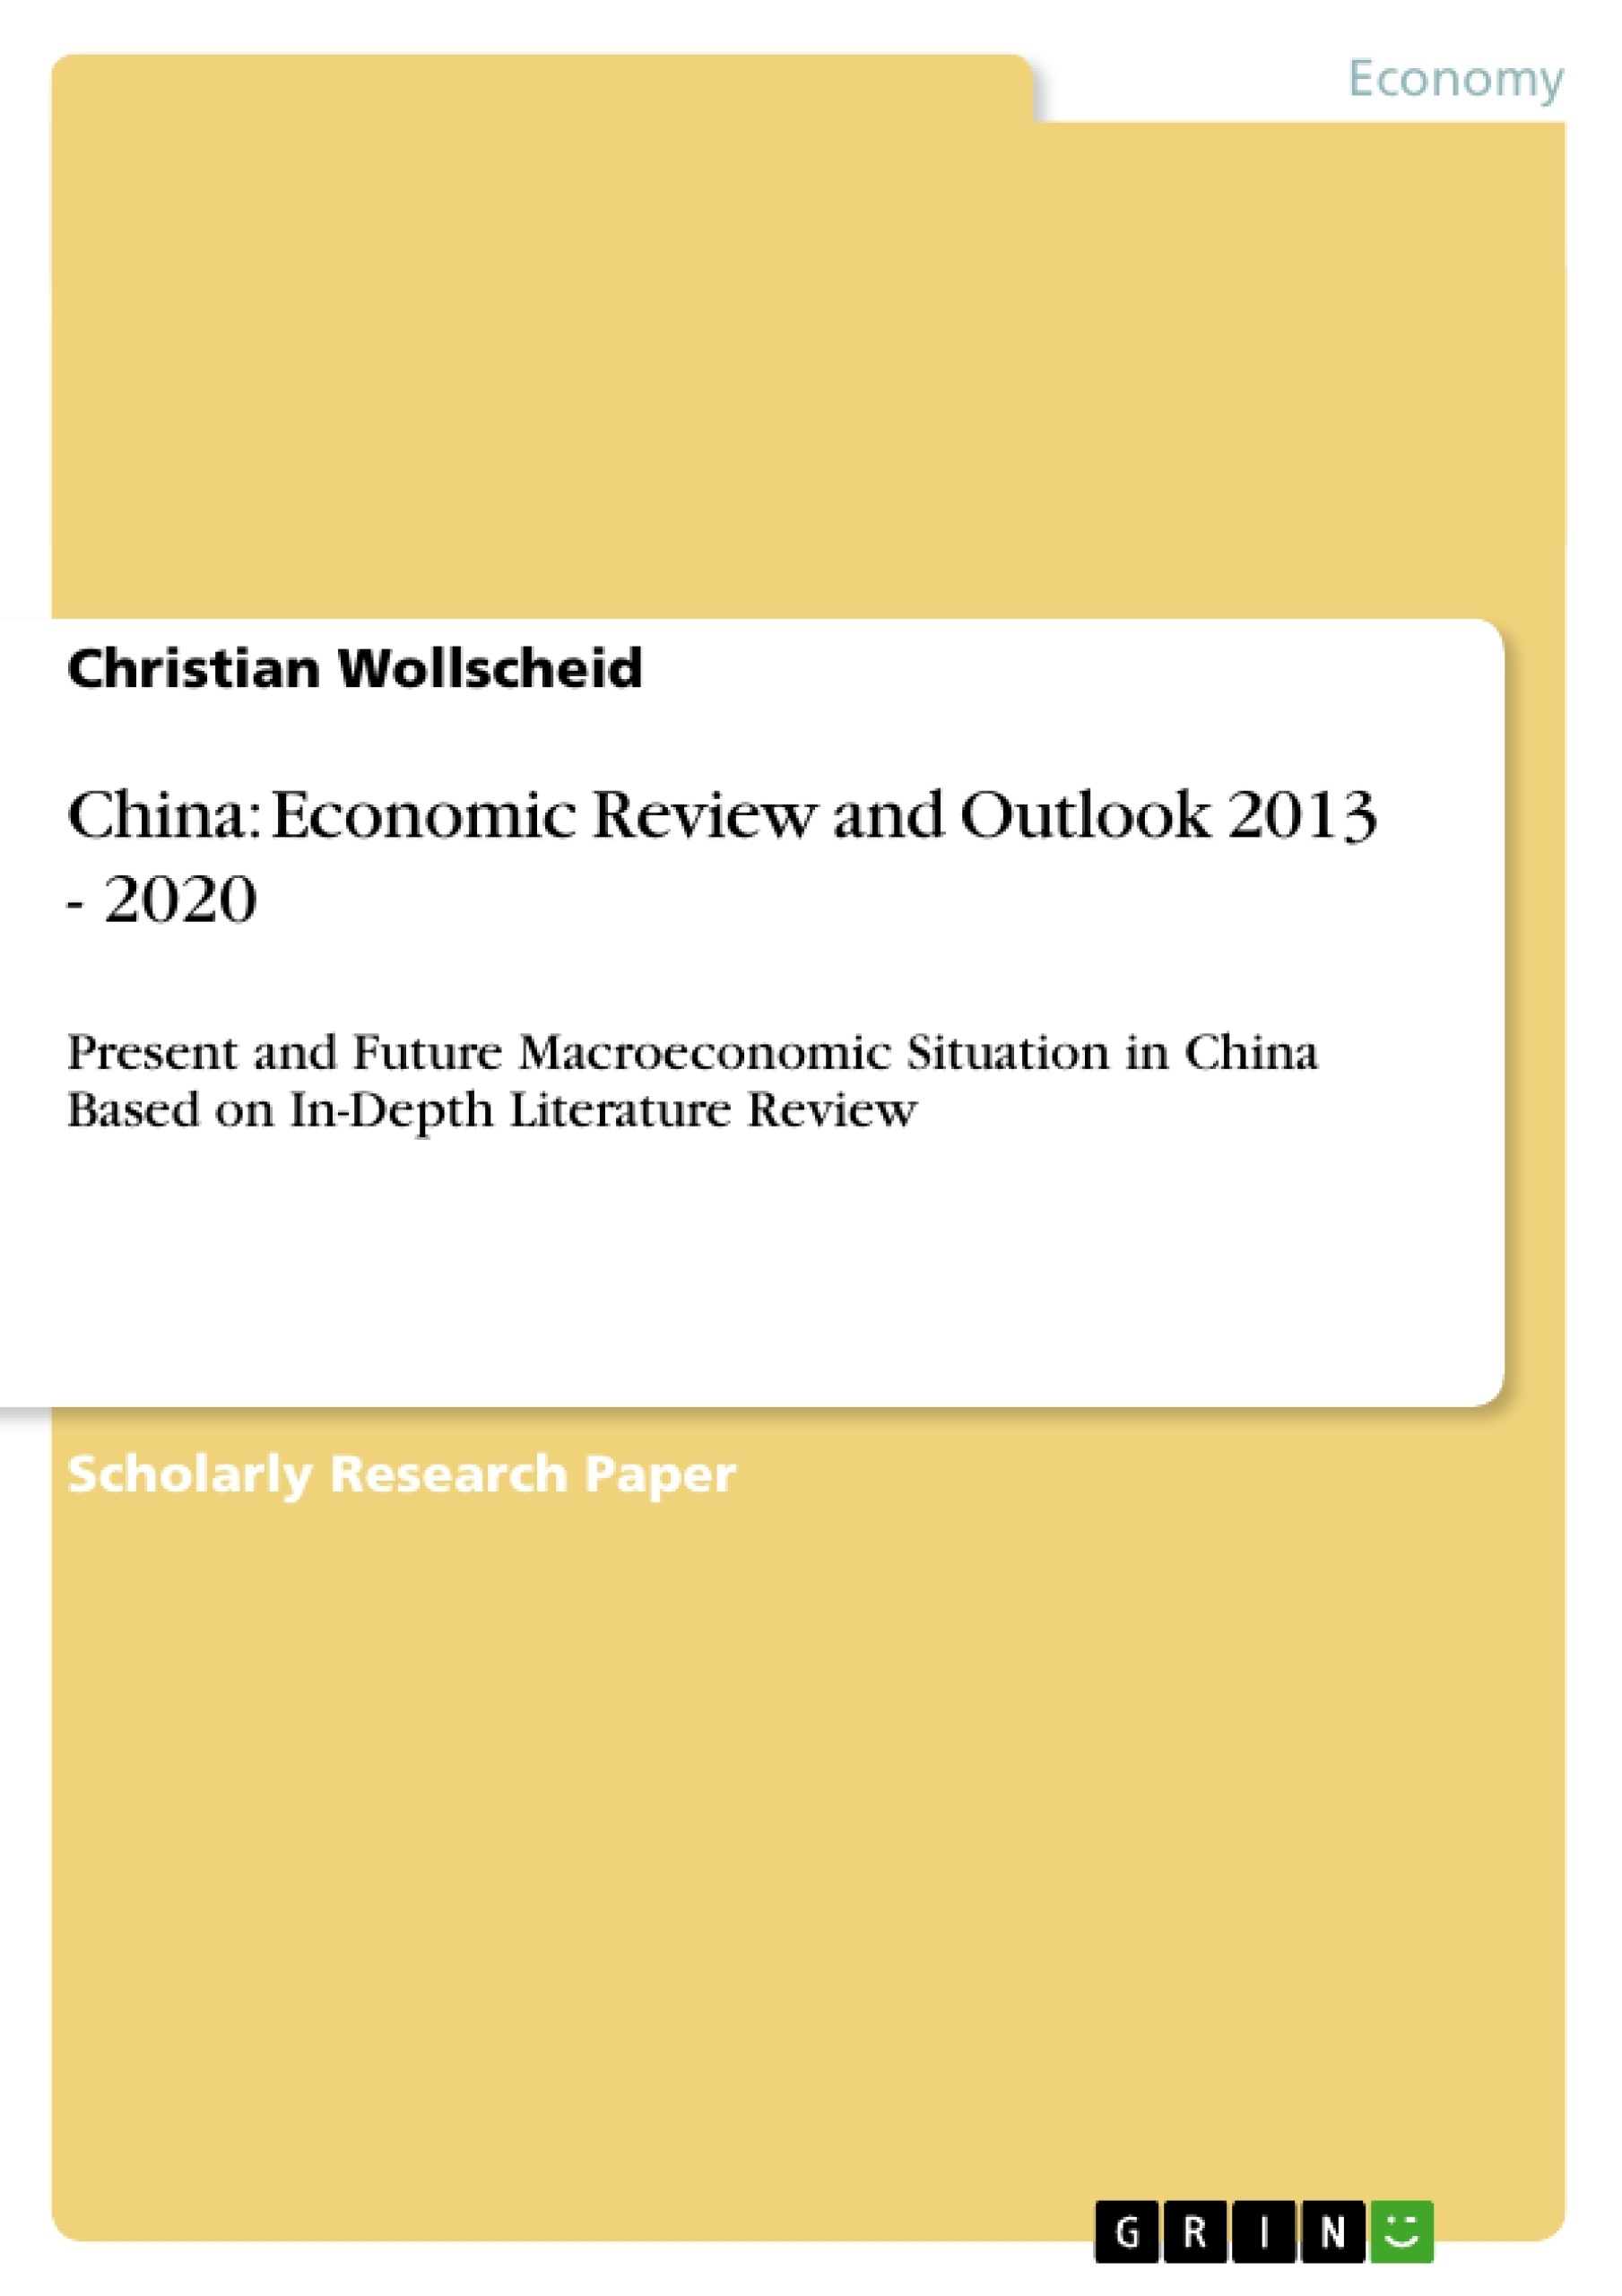 Title: China: Economic Review and Outlook 2013 - 2020